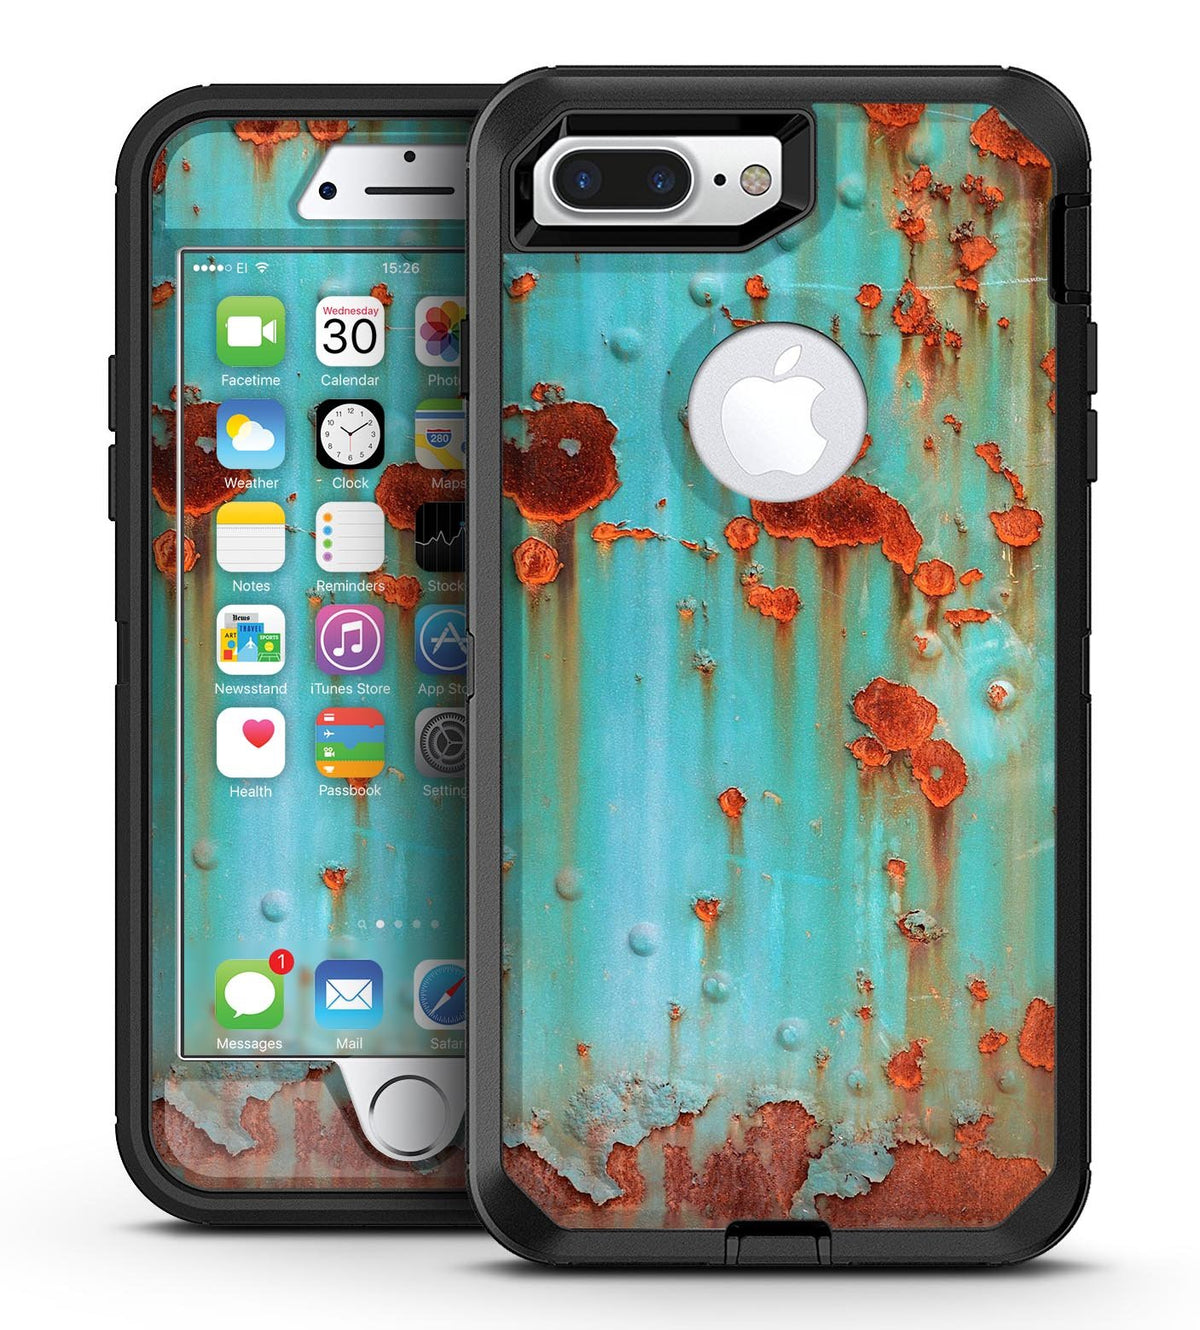 buy online 355a9 bca8e Teal Painted Rustic Metal - iPhone 7 Plus/8 Plus OtterBox Case & Skin Kits